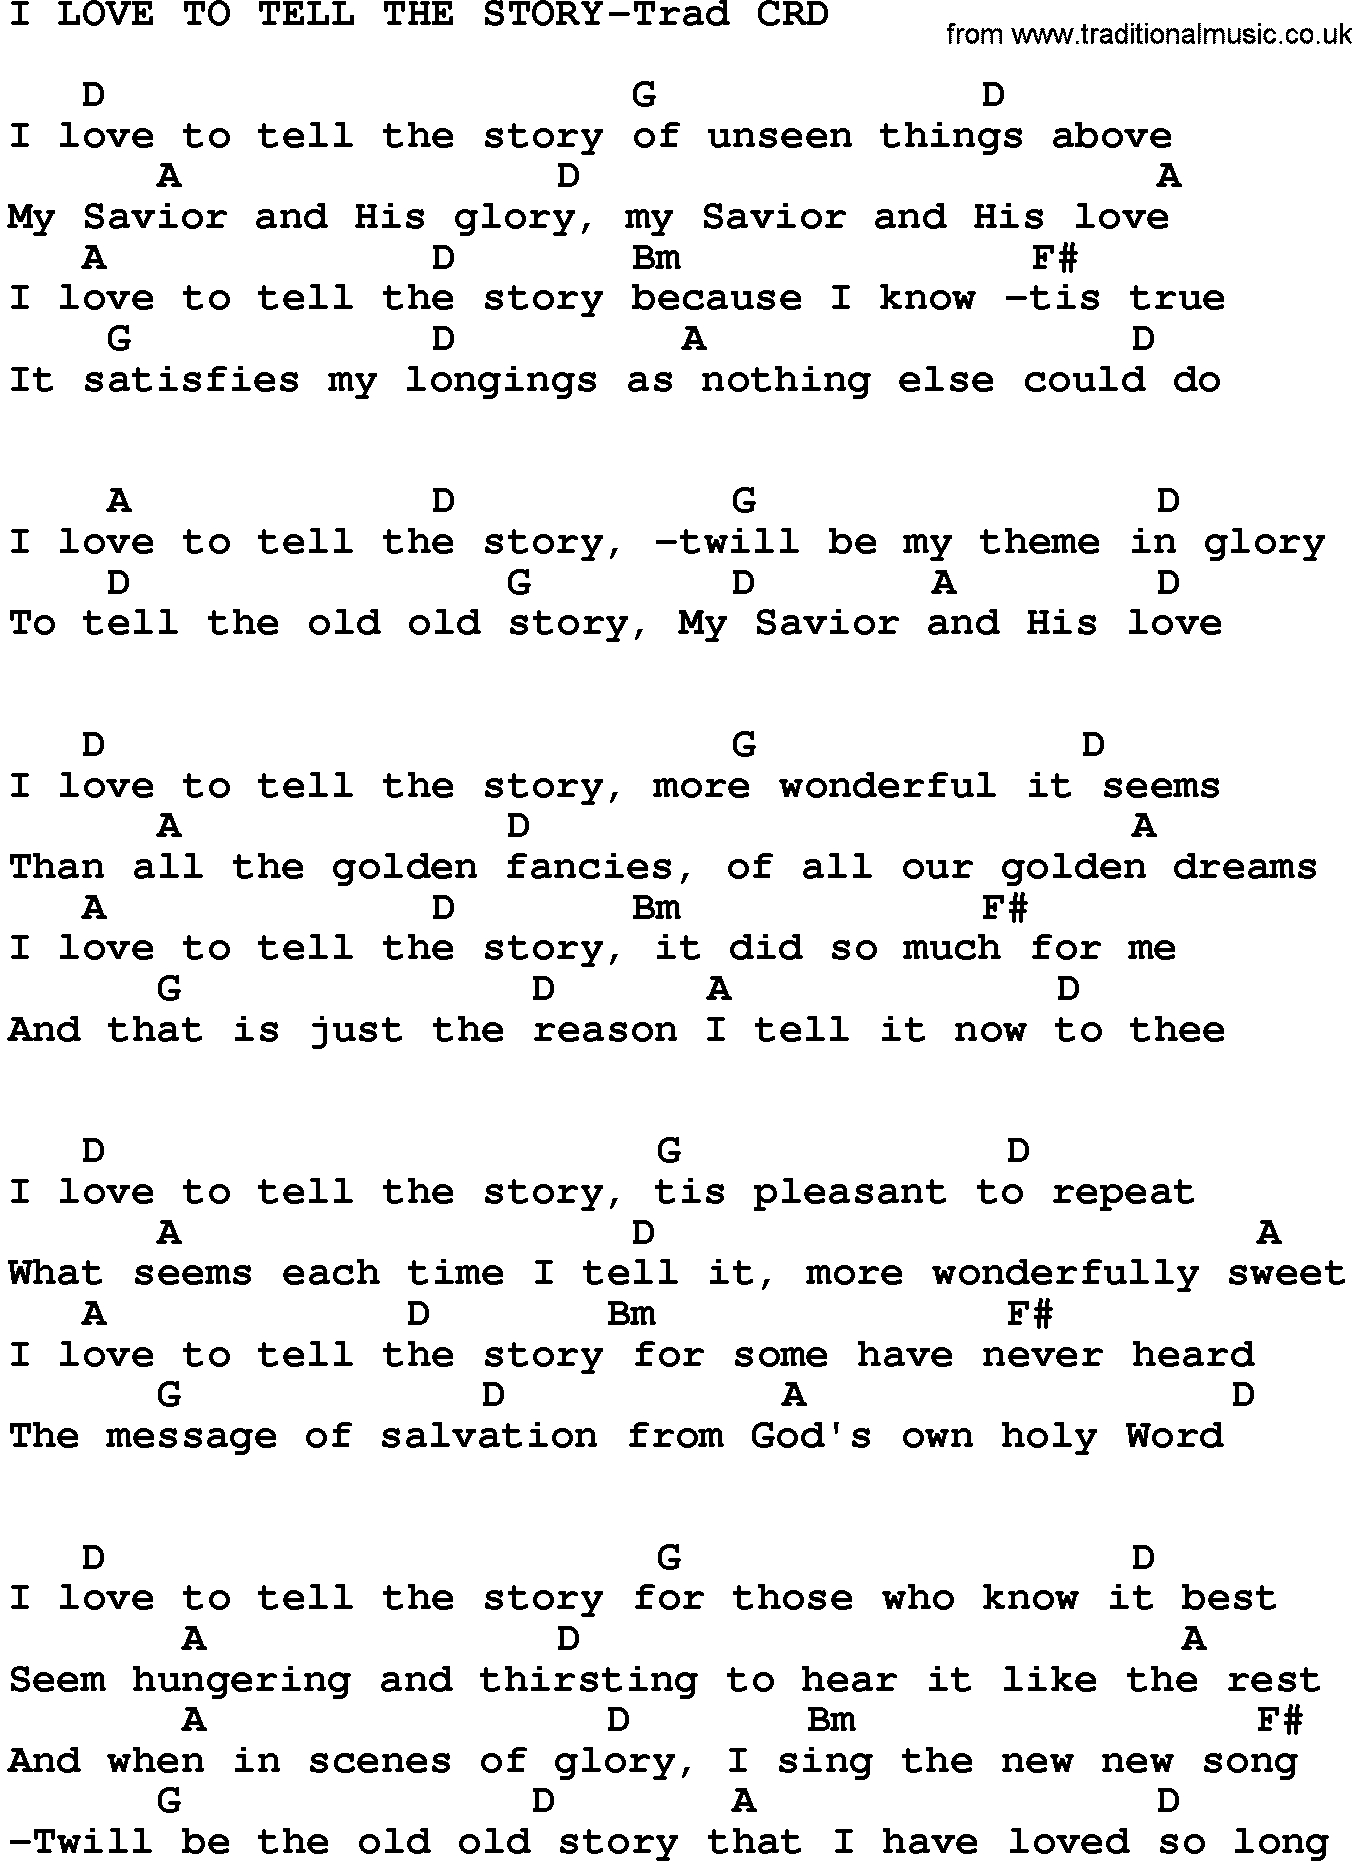 Love Story Chords Gospel Song I Love To Tell The Story Trad Lyrics And Chords